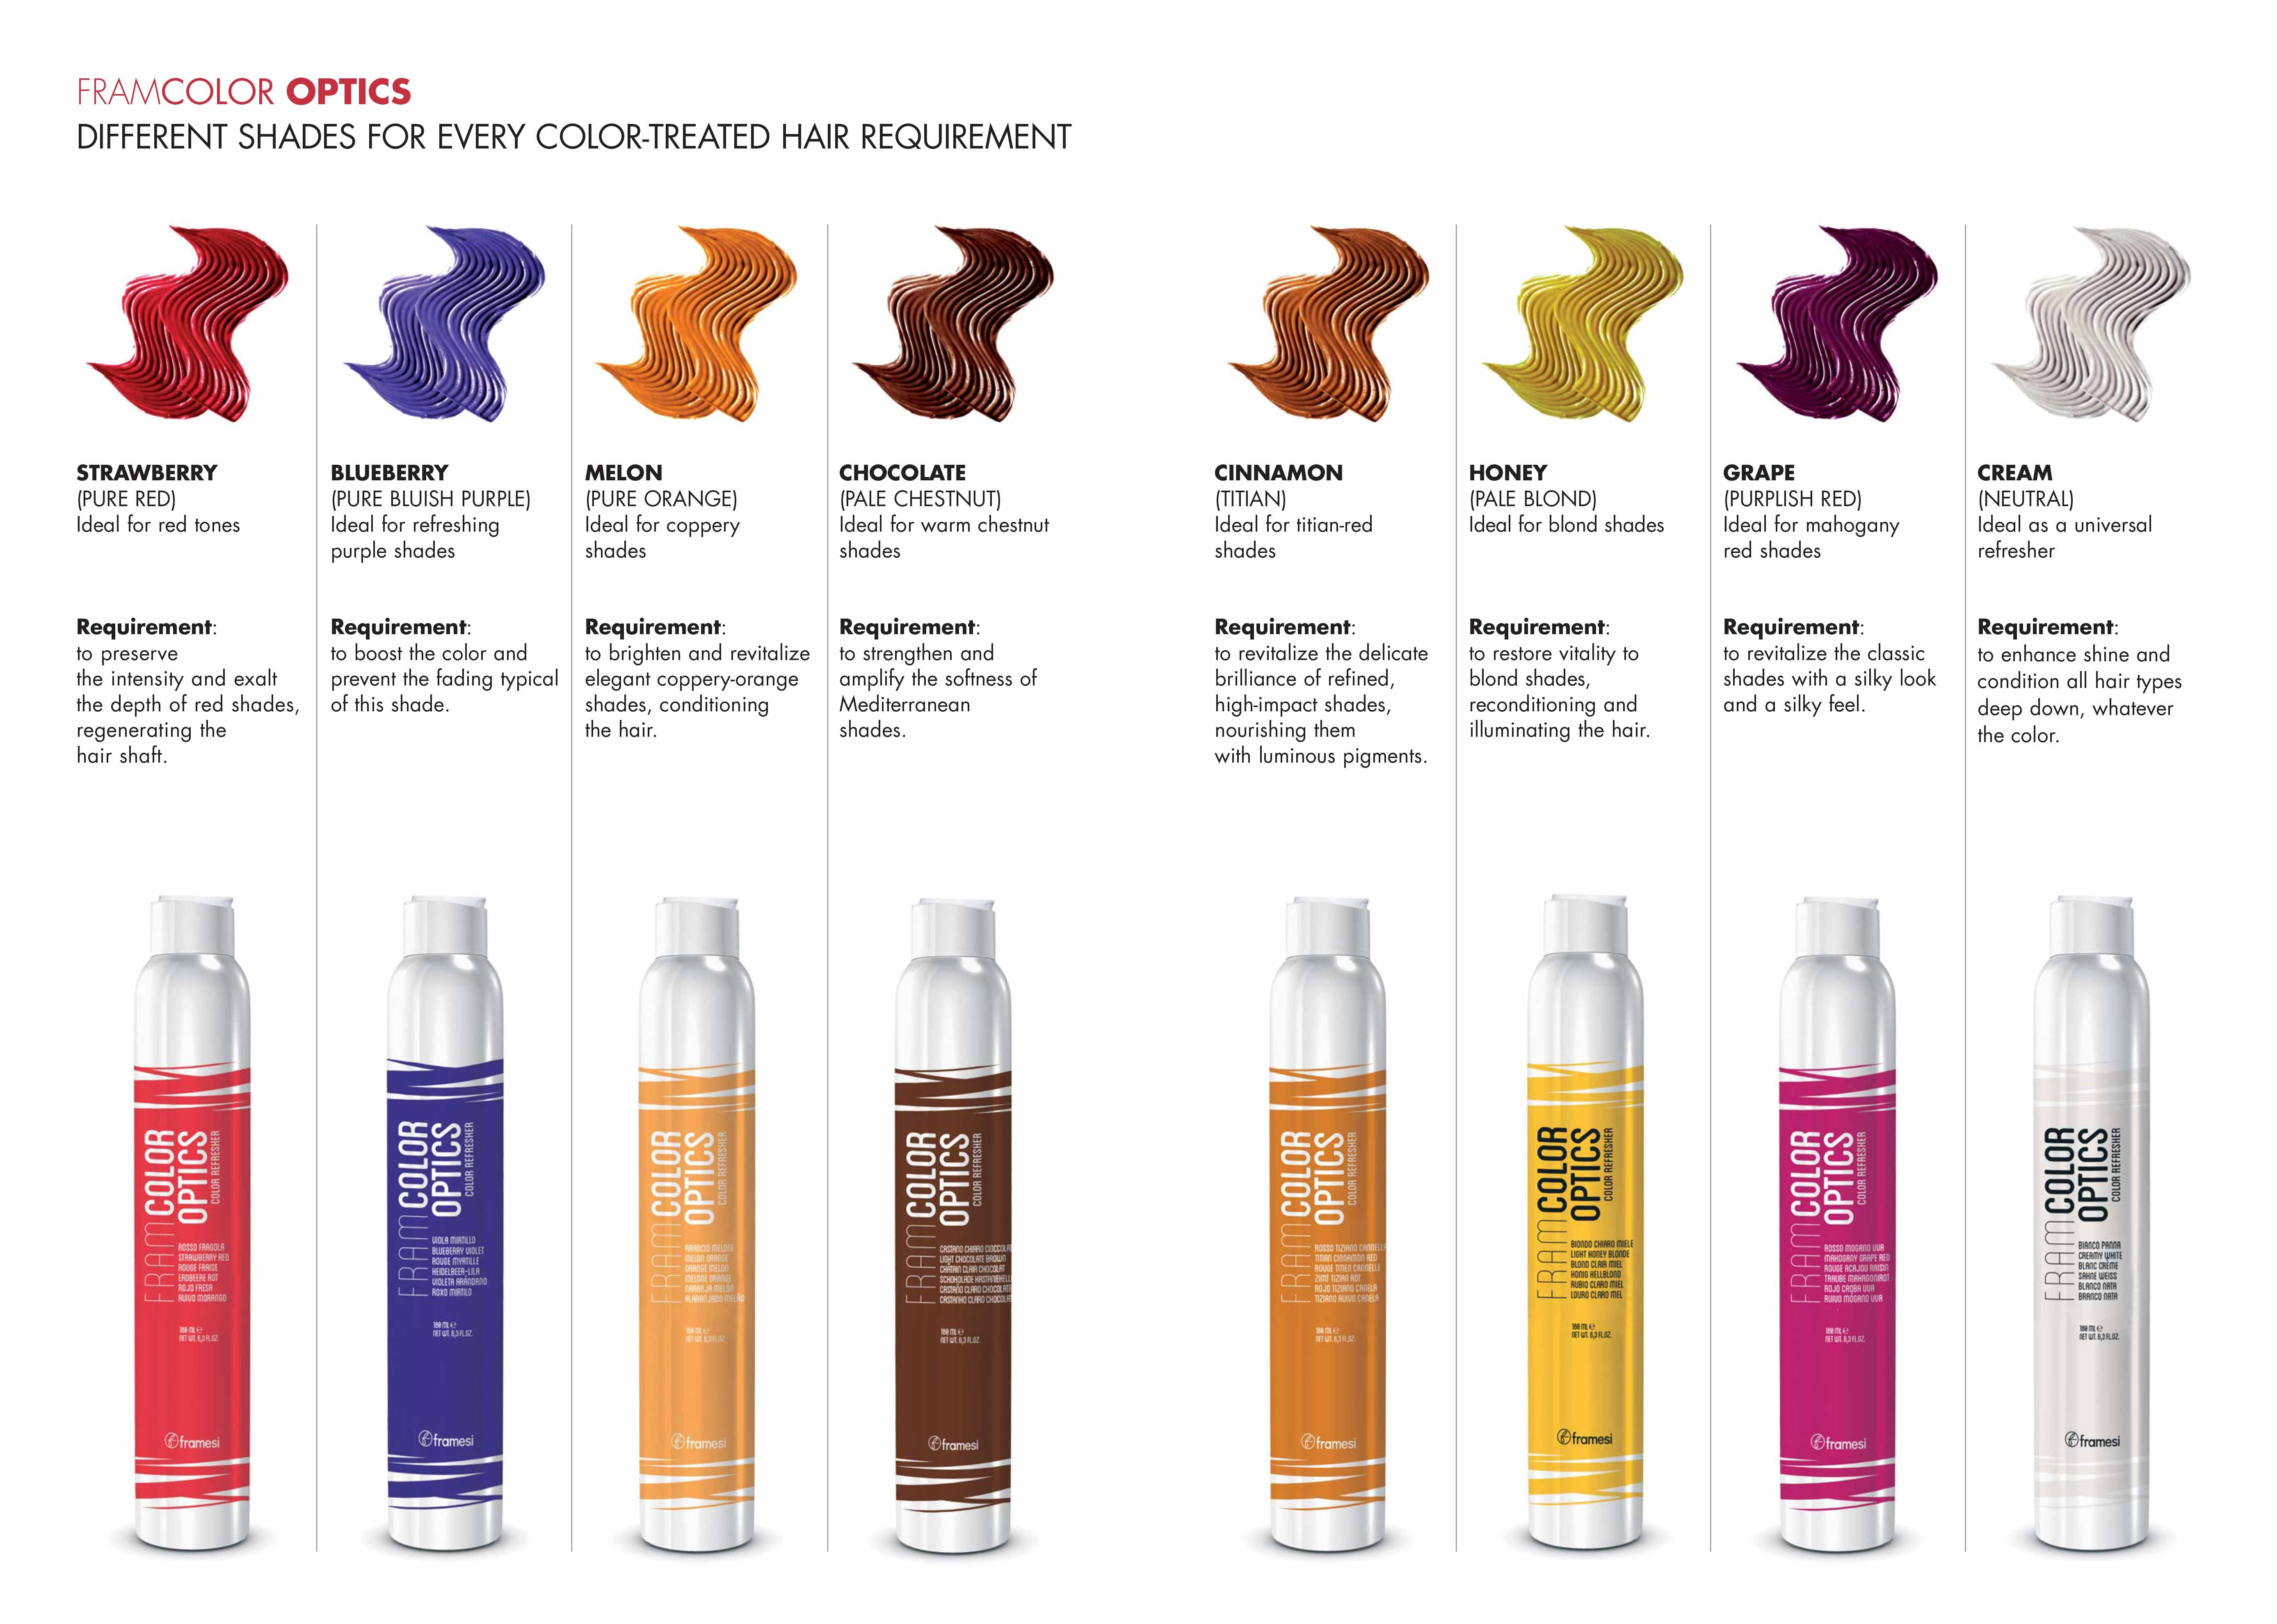 different hair styling products framcolor optics different shades for every color 7955